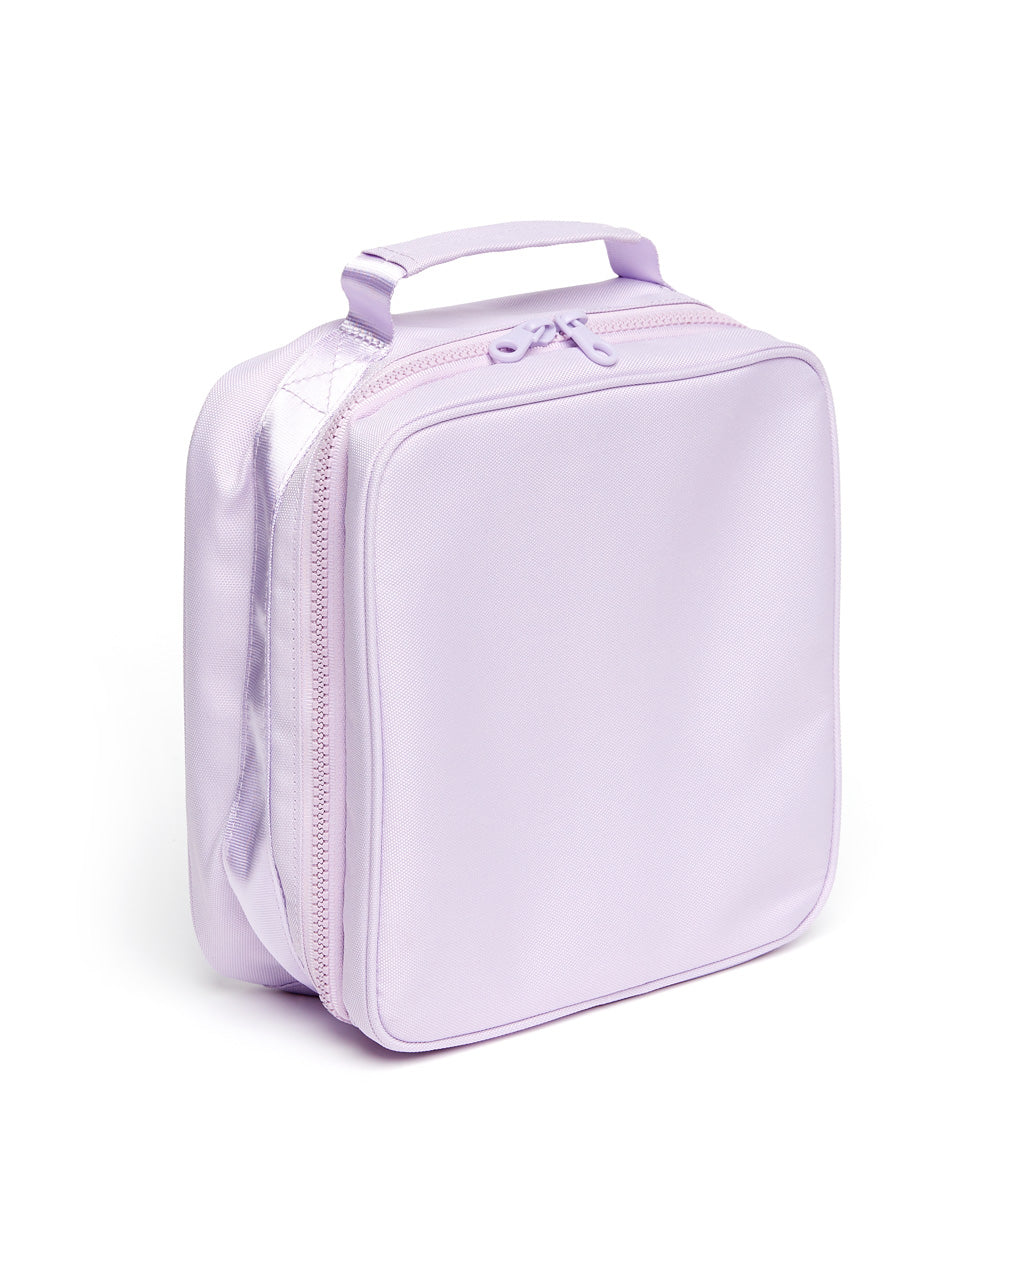 side view of the zipper around the lilac lunch bag